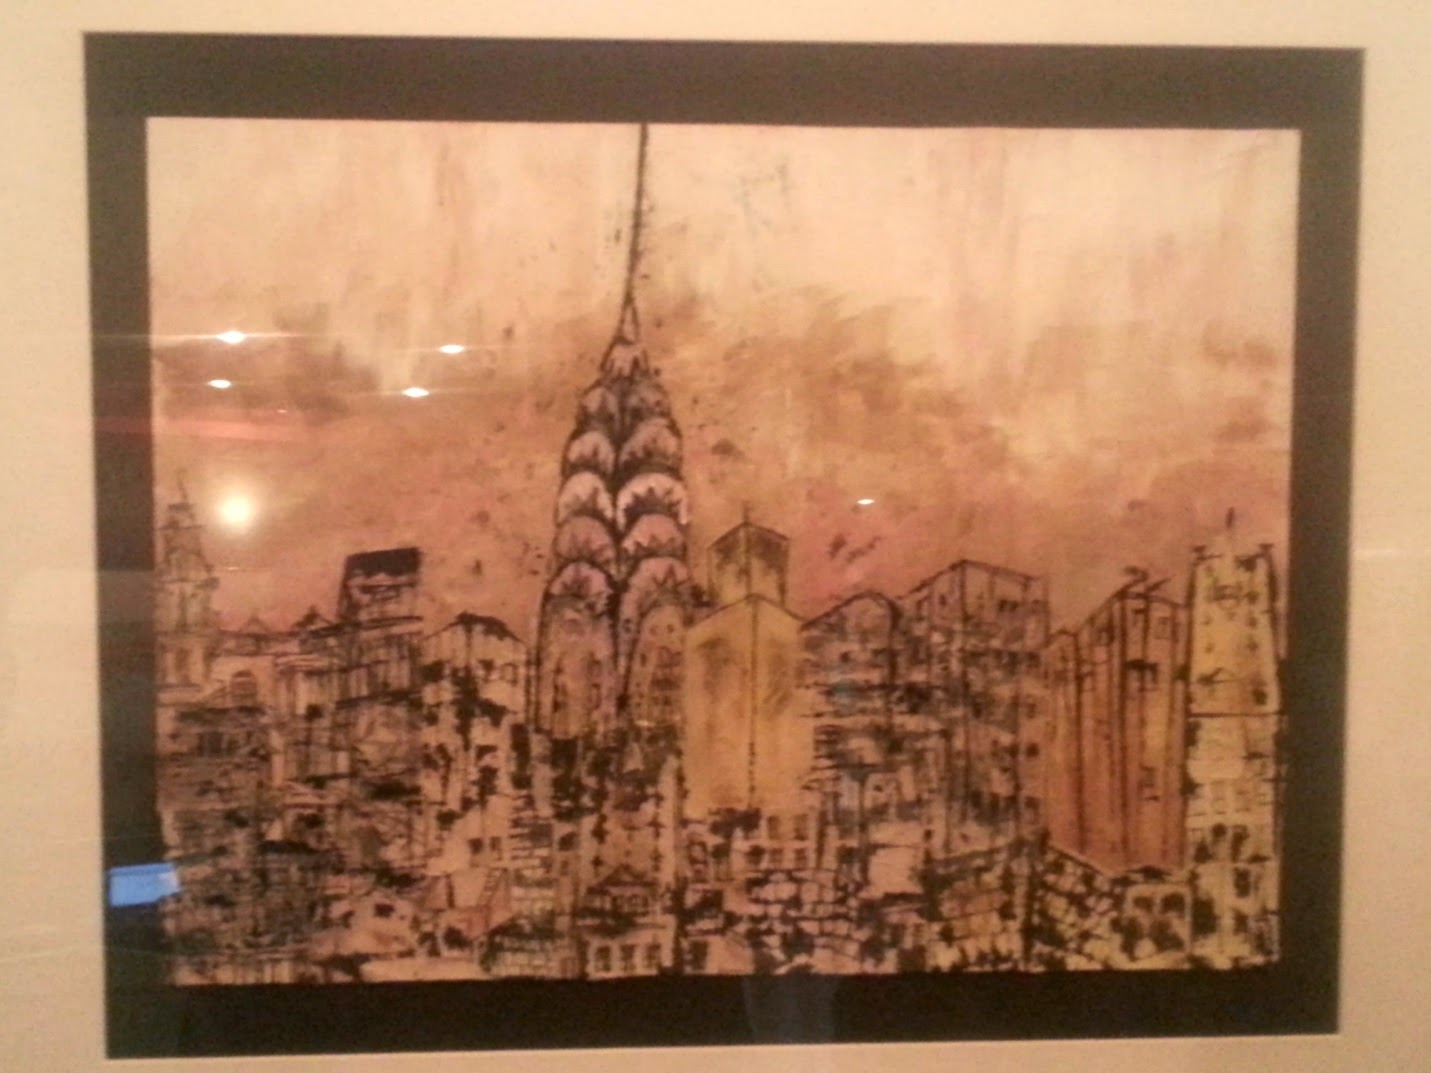 The Chrysler Building City Scape